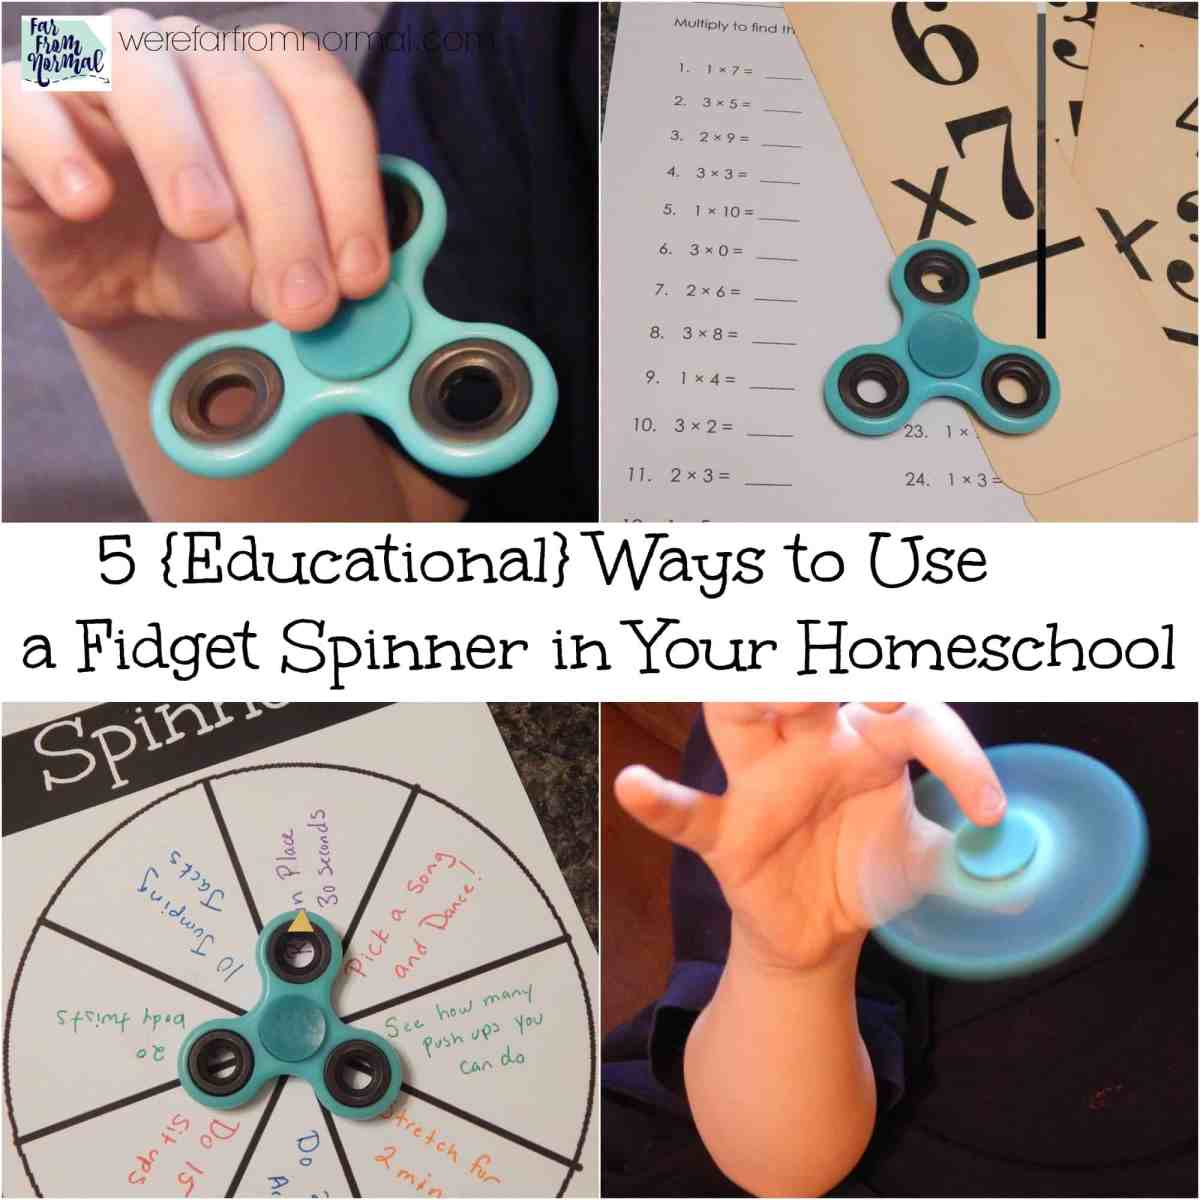 5 {Educational} Ways to Use a Fidget Spinner in Your Homeschool